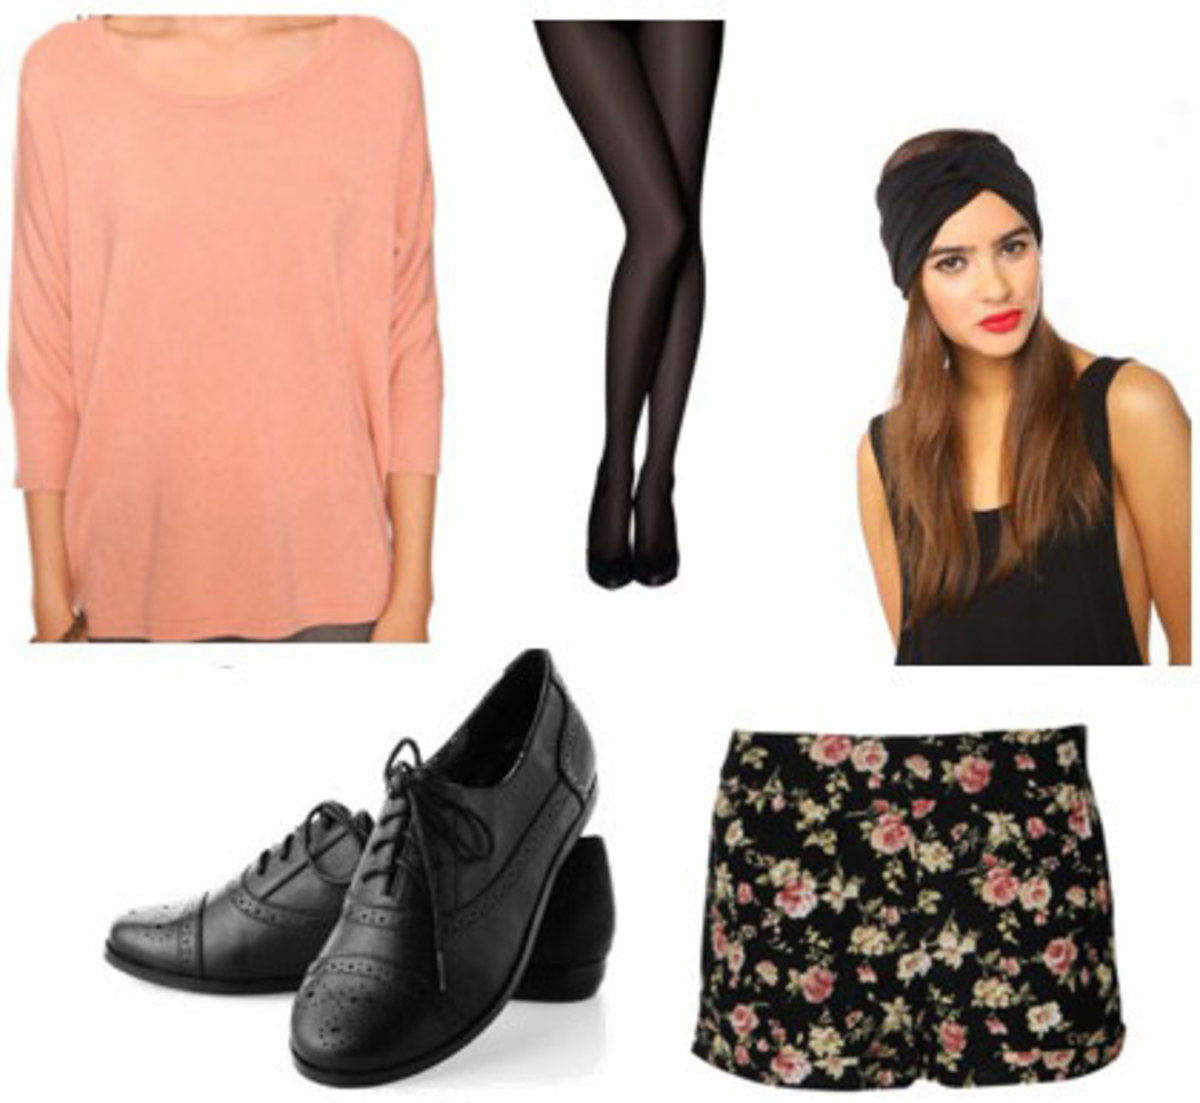 black-shorts-o-peach-sweater-floral-black-tights-black-shoe-brogues-head-howtowear-fashion-style-outfit-fall-winter-hairr-weekend.jpg